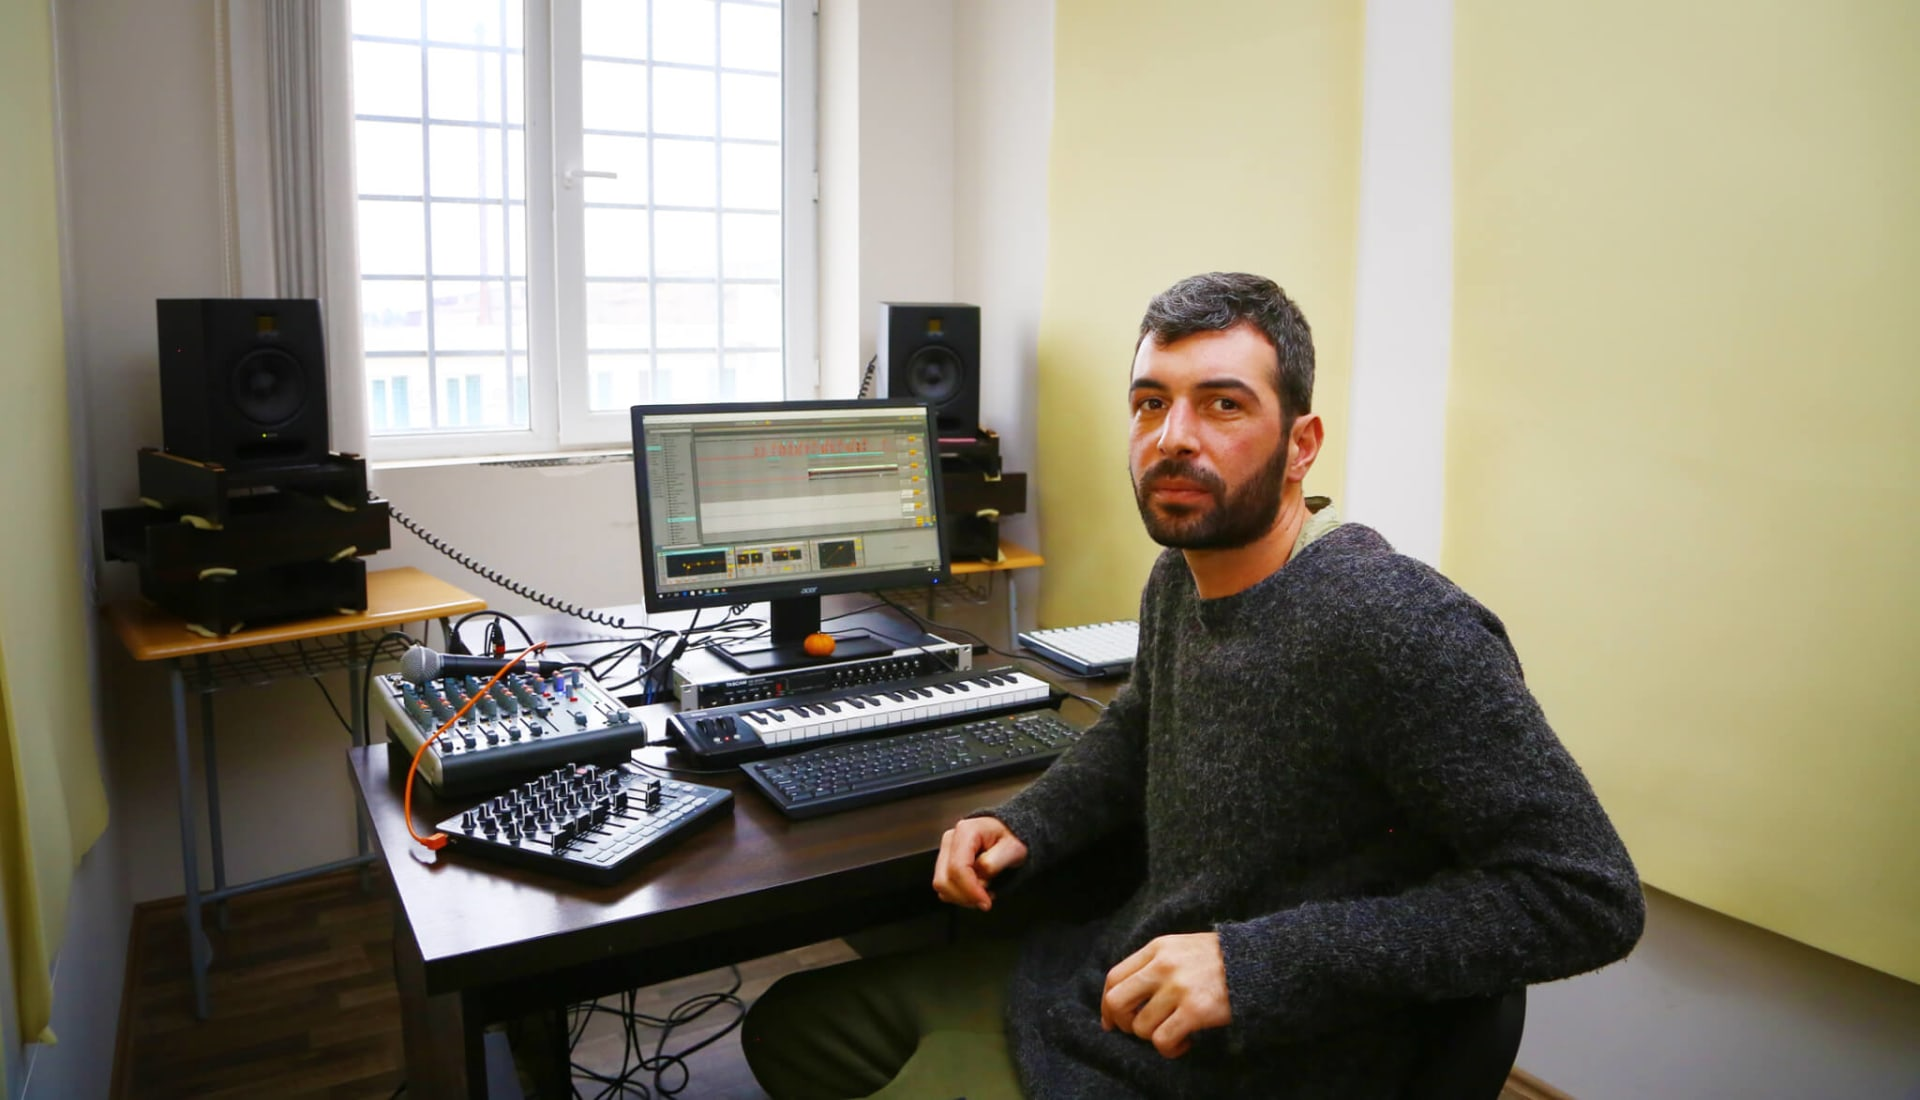 Georgian Techno Producer Making Music From Prison